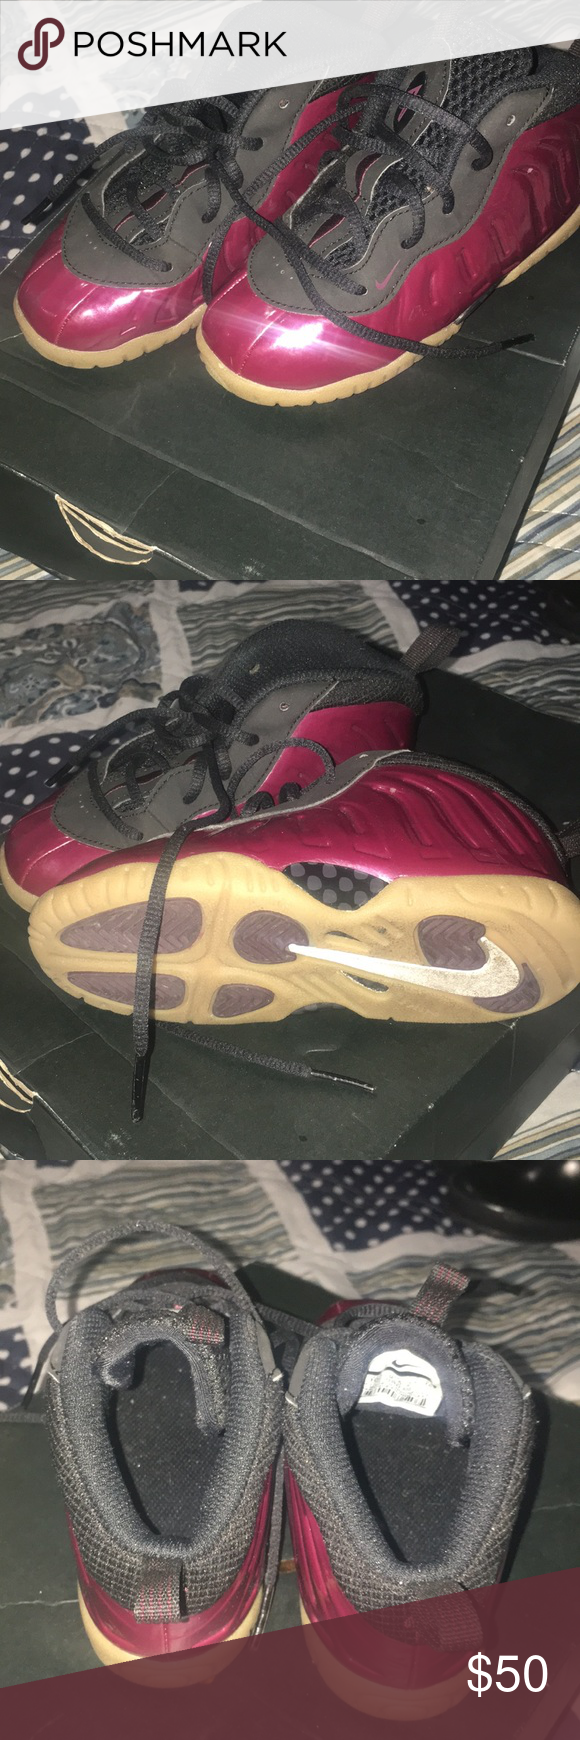 hot sale online 40e99 9dd07 Foams Peanut butter and jelly foams worn no box Jordan Shoes ...